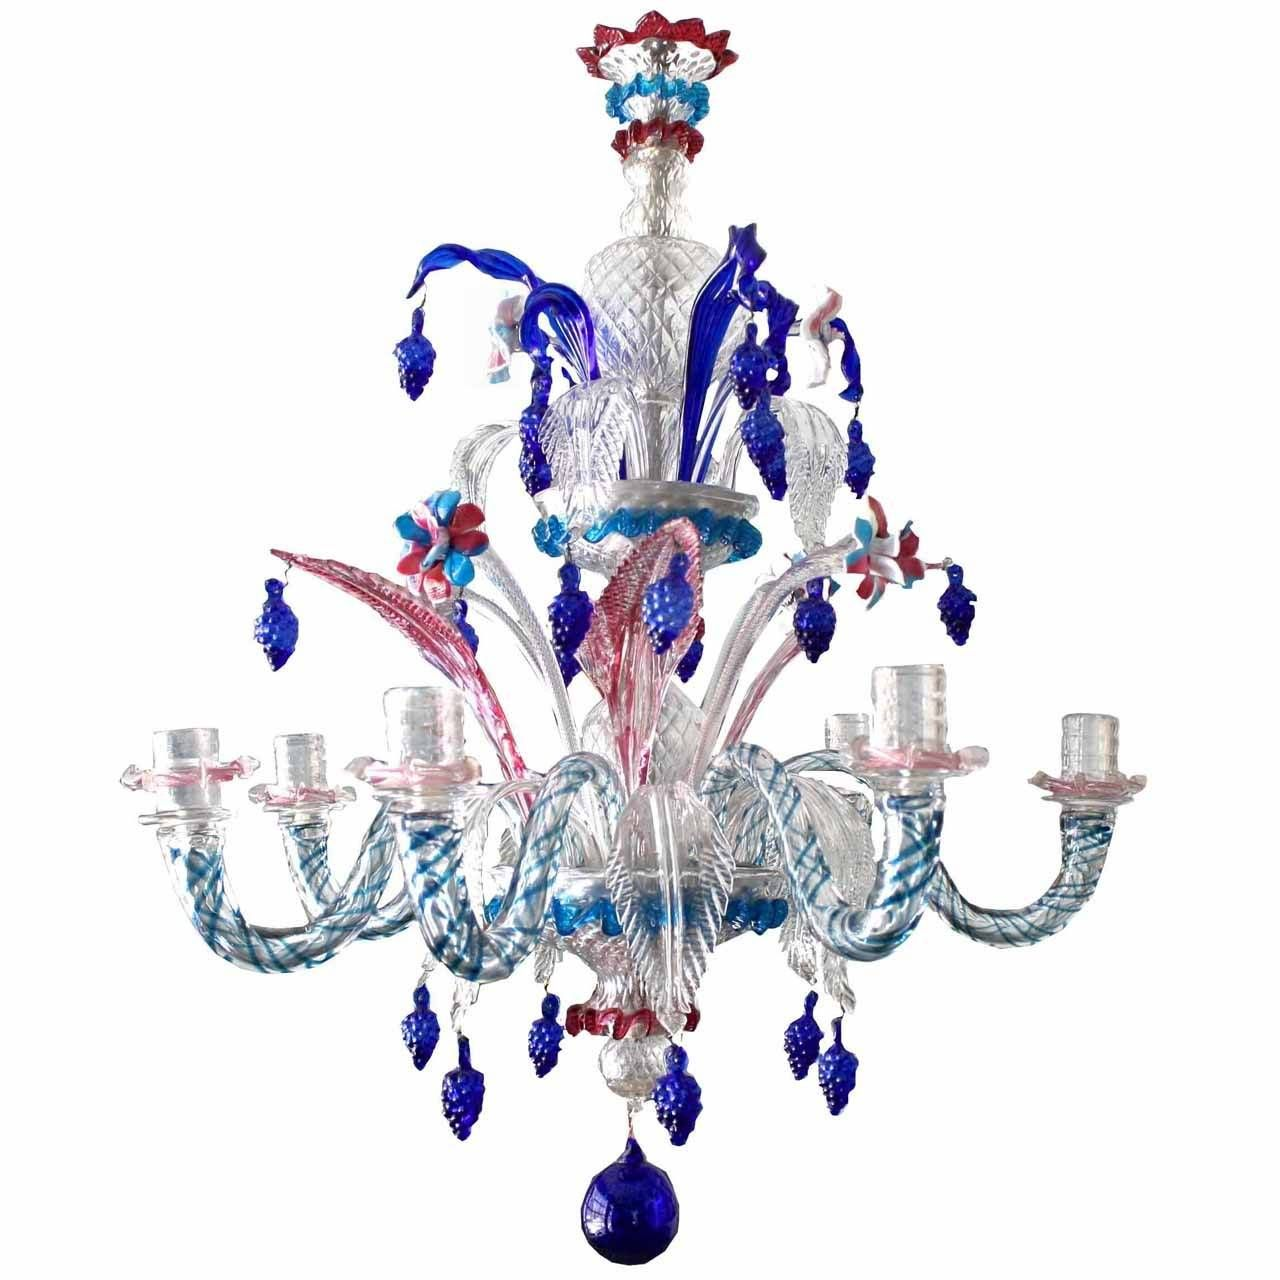 19th century murano glass harlequin chandelier murano glass 19th century murano glass harlequin chandelier 1stdibs arubaitofo Image collections